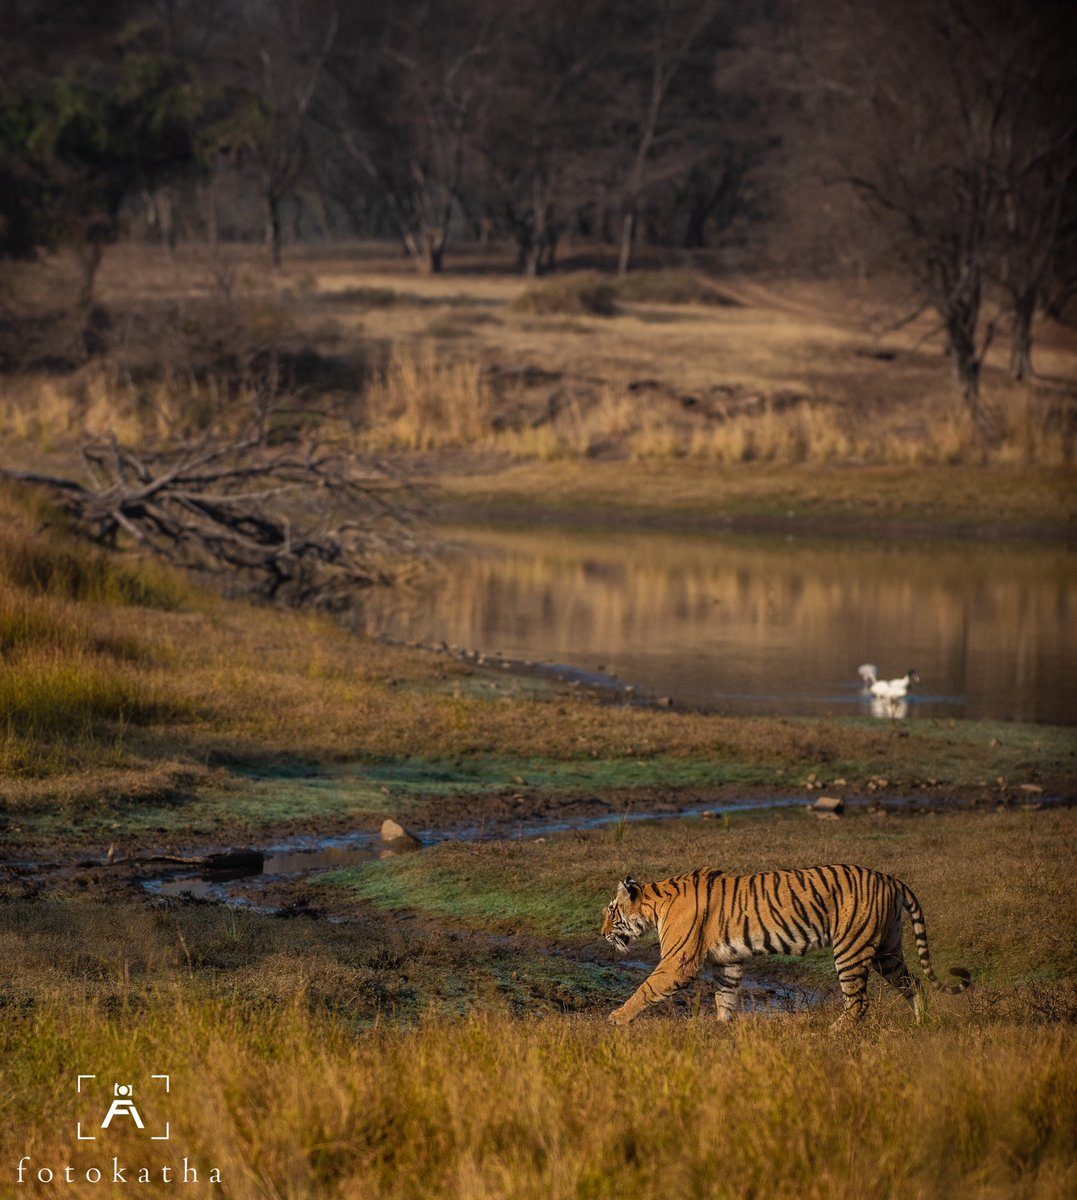 In the forests in India, the tiger is undoubtedly the showstopper.  #tiger #tigers #ranthambore #ranthamborenationalpark #ranthambore #ranthamboretigerreserve #savetigers #wildlife #wildlifephotography #wildlifeonearth #wildlifeplanet  #wildlifephotographer  #wildlifeonearth